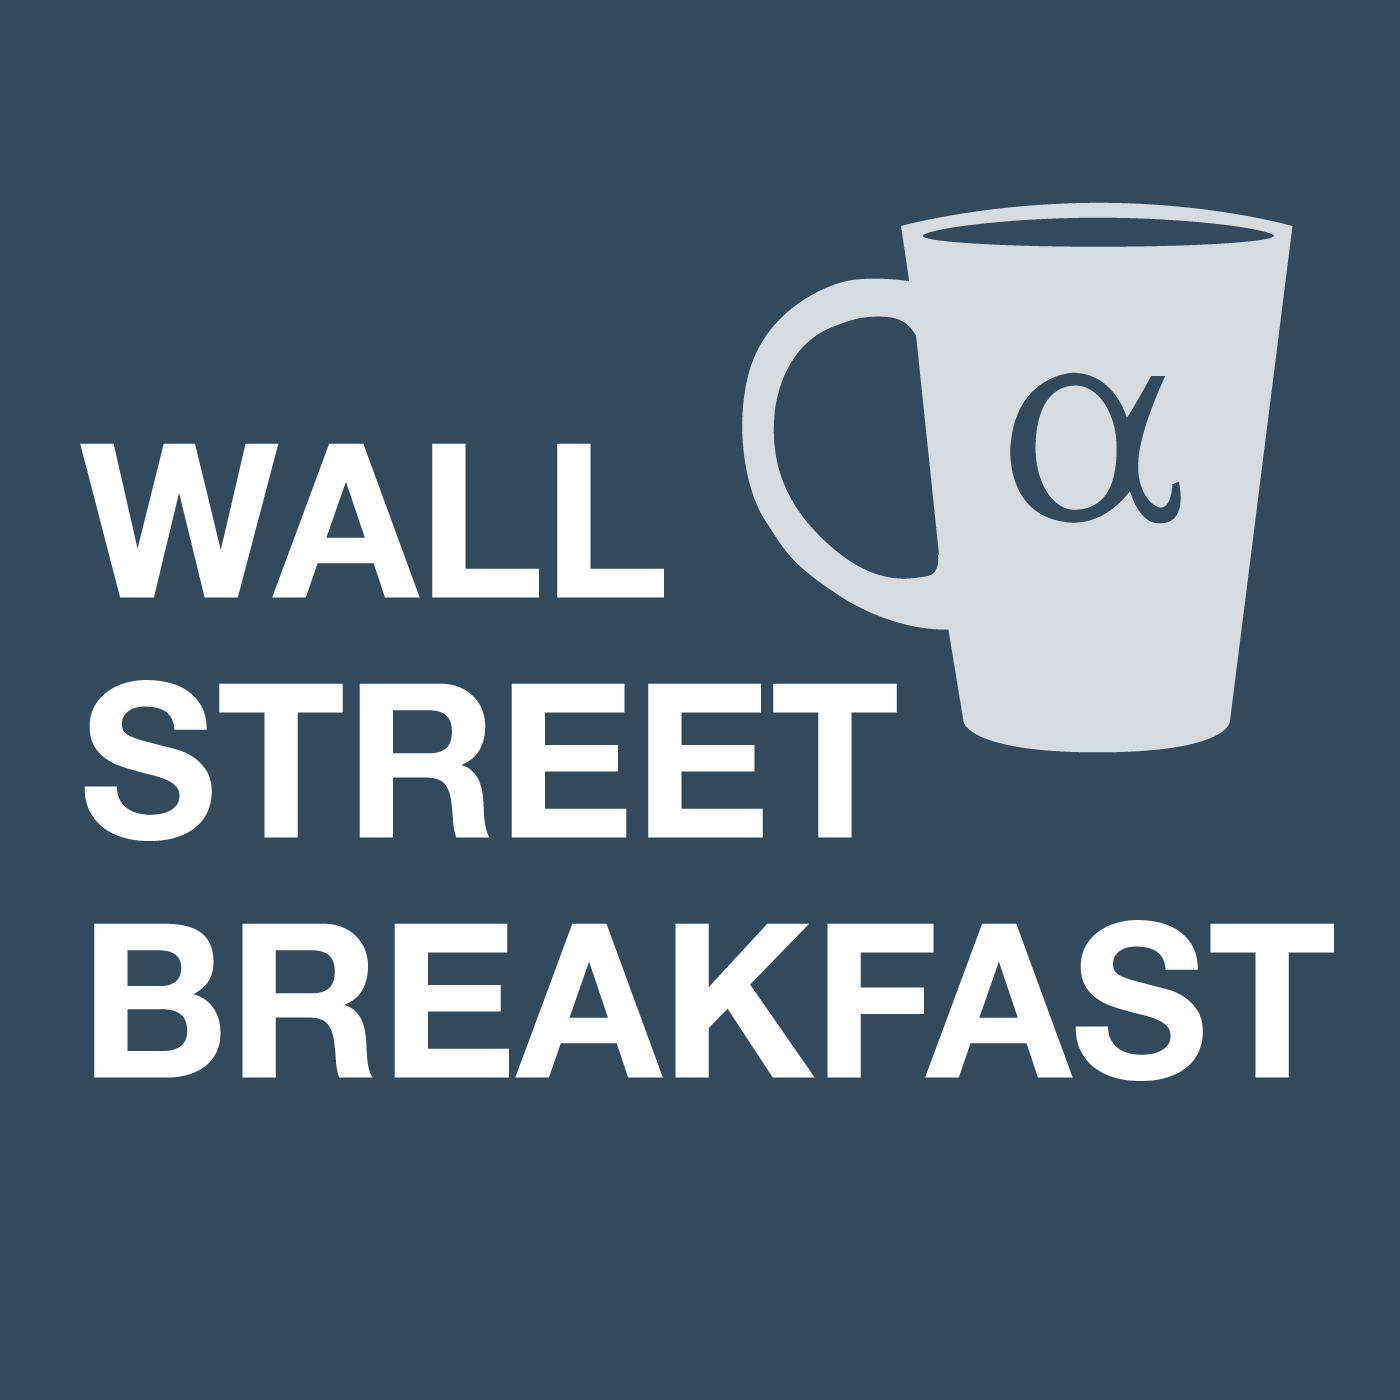 Wall Street Breakfast June 24: Trade Spotlight Shifts To Europe